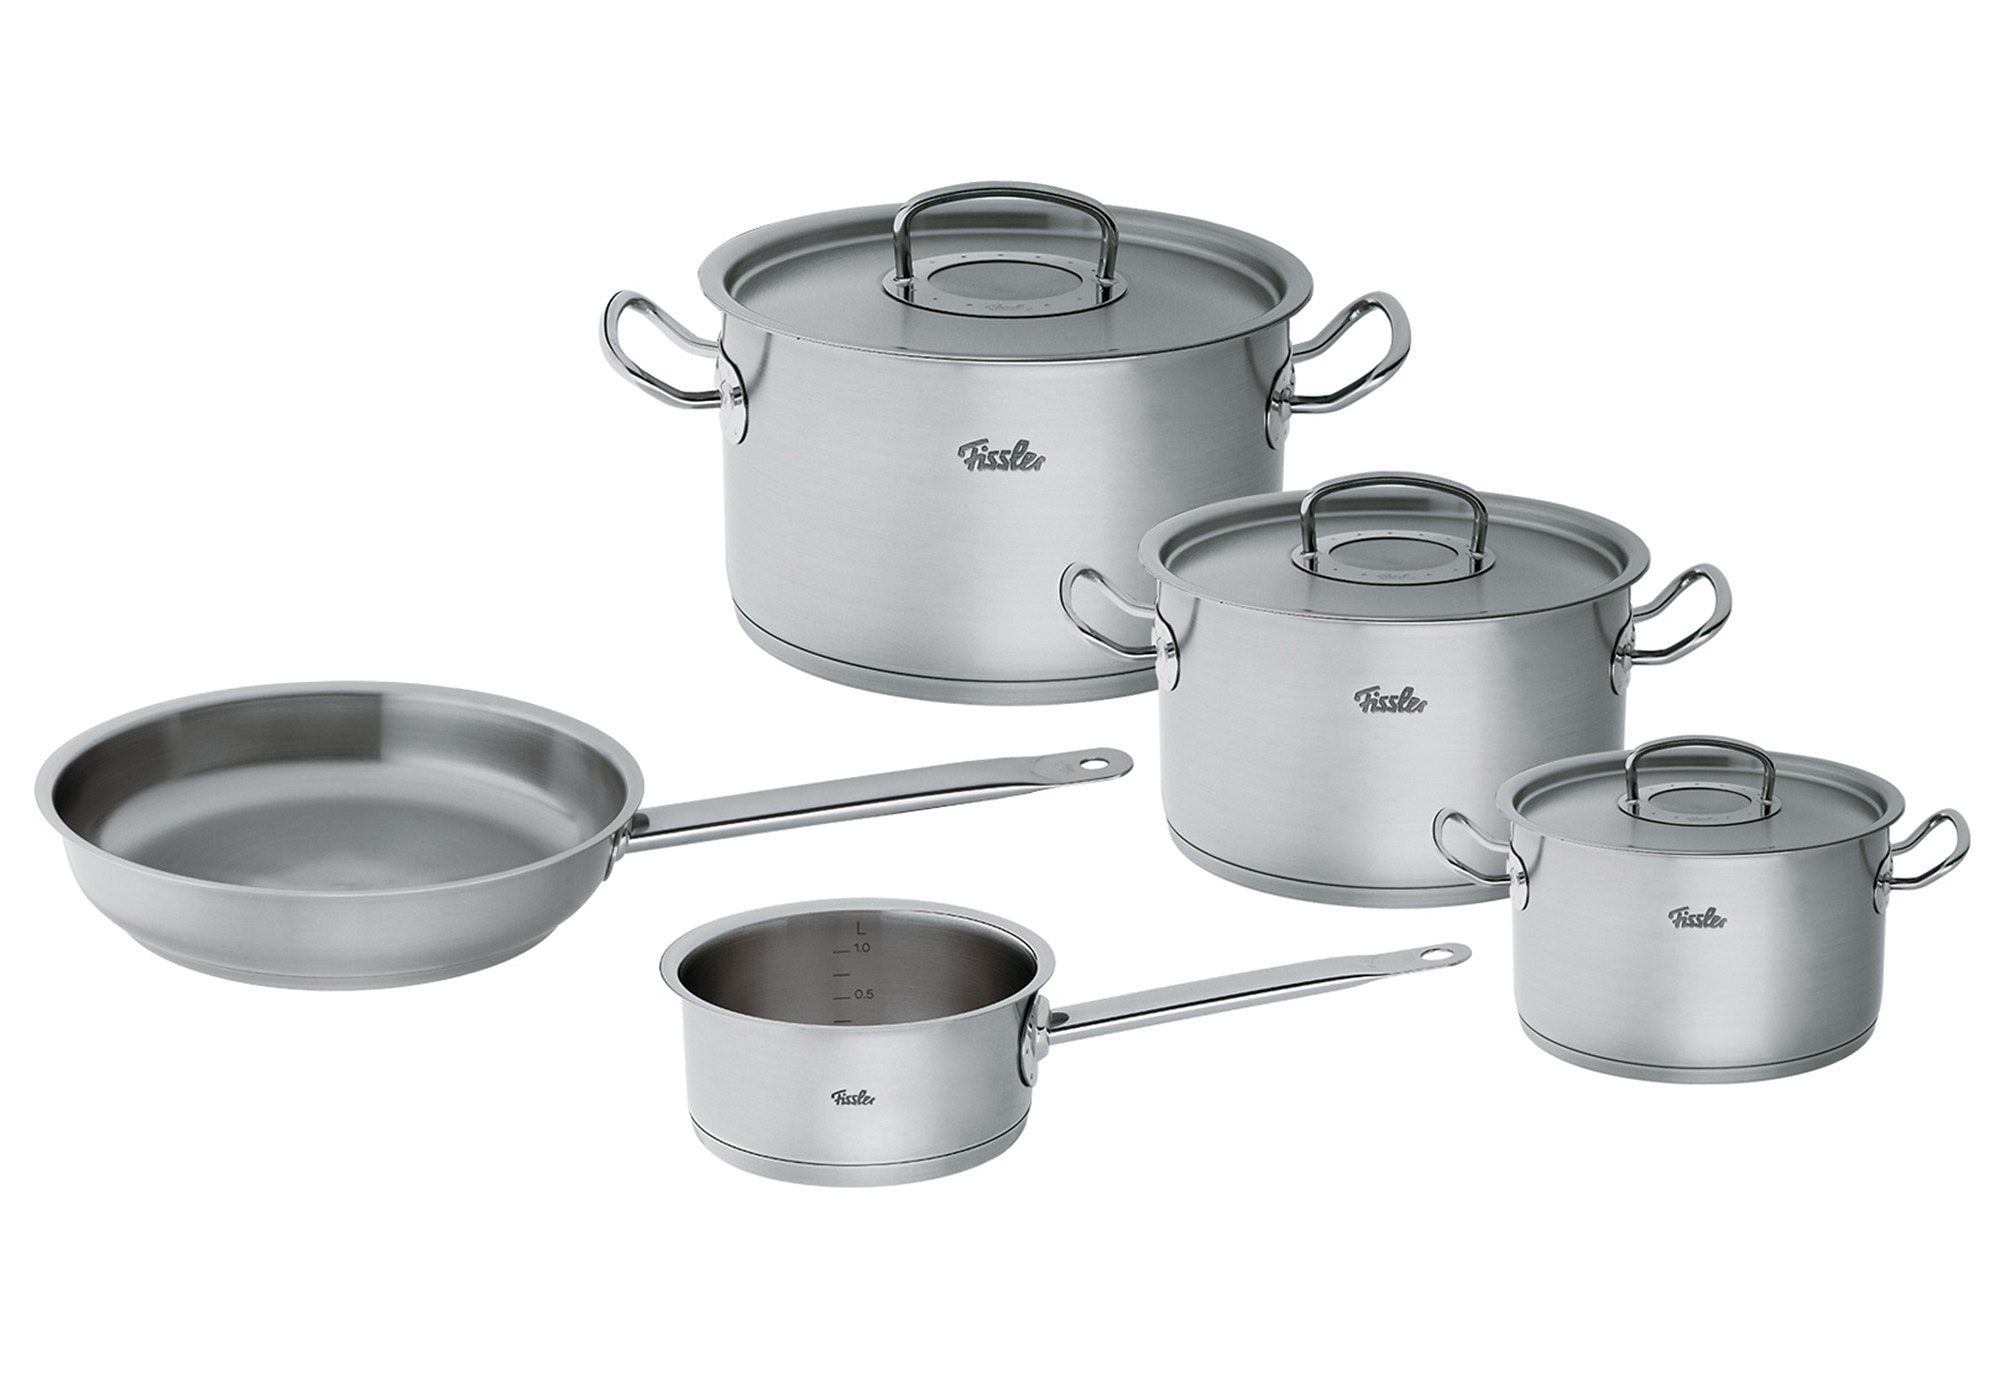 Fissler Topf Set Original Profi Collection Set 8 Tlg Online Bestellen Quelle De